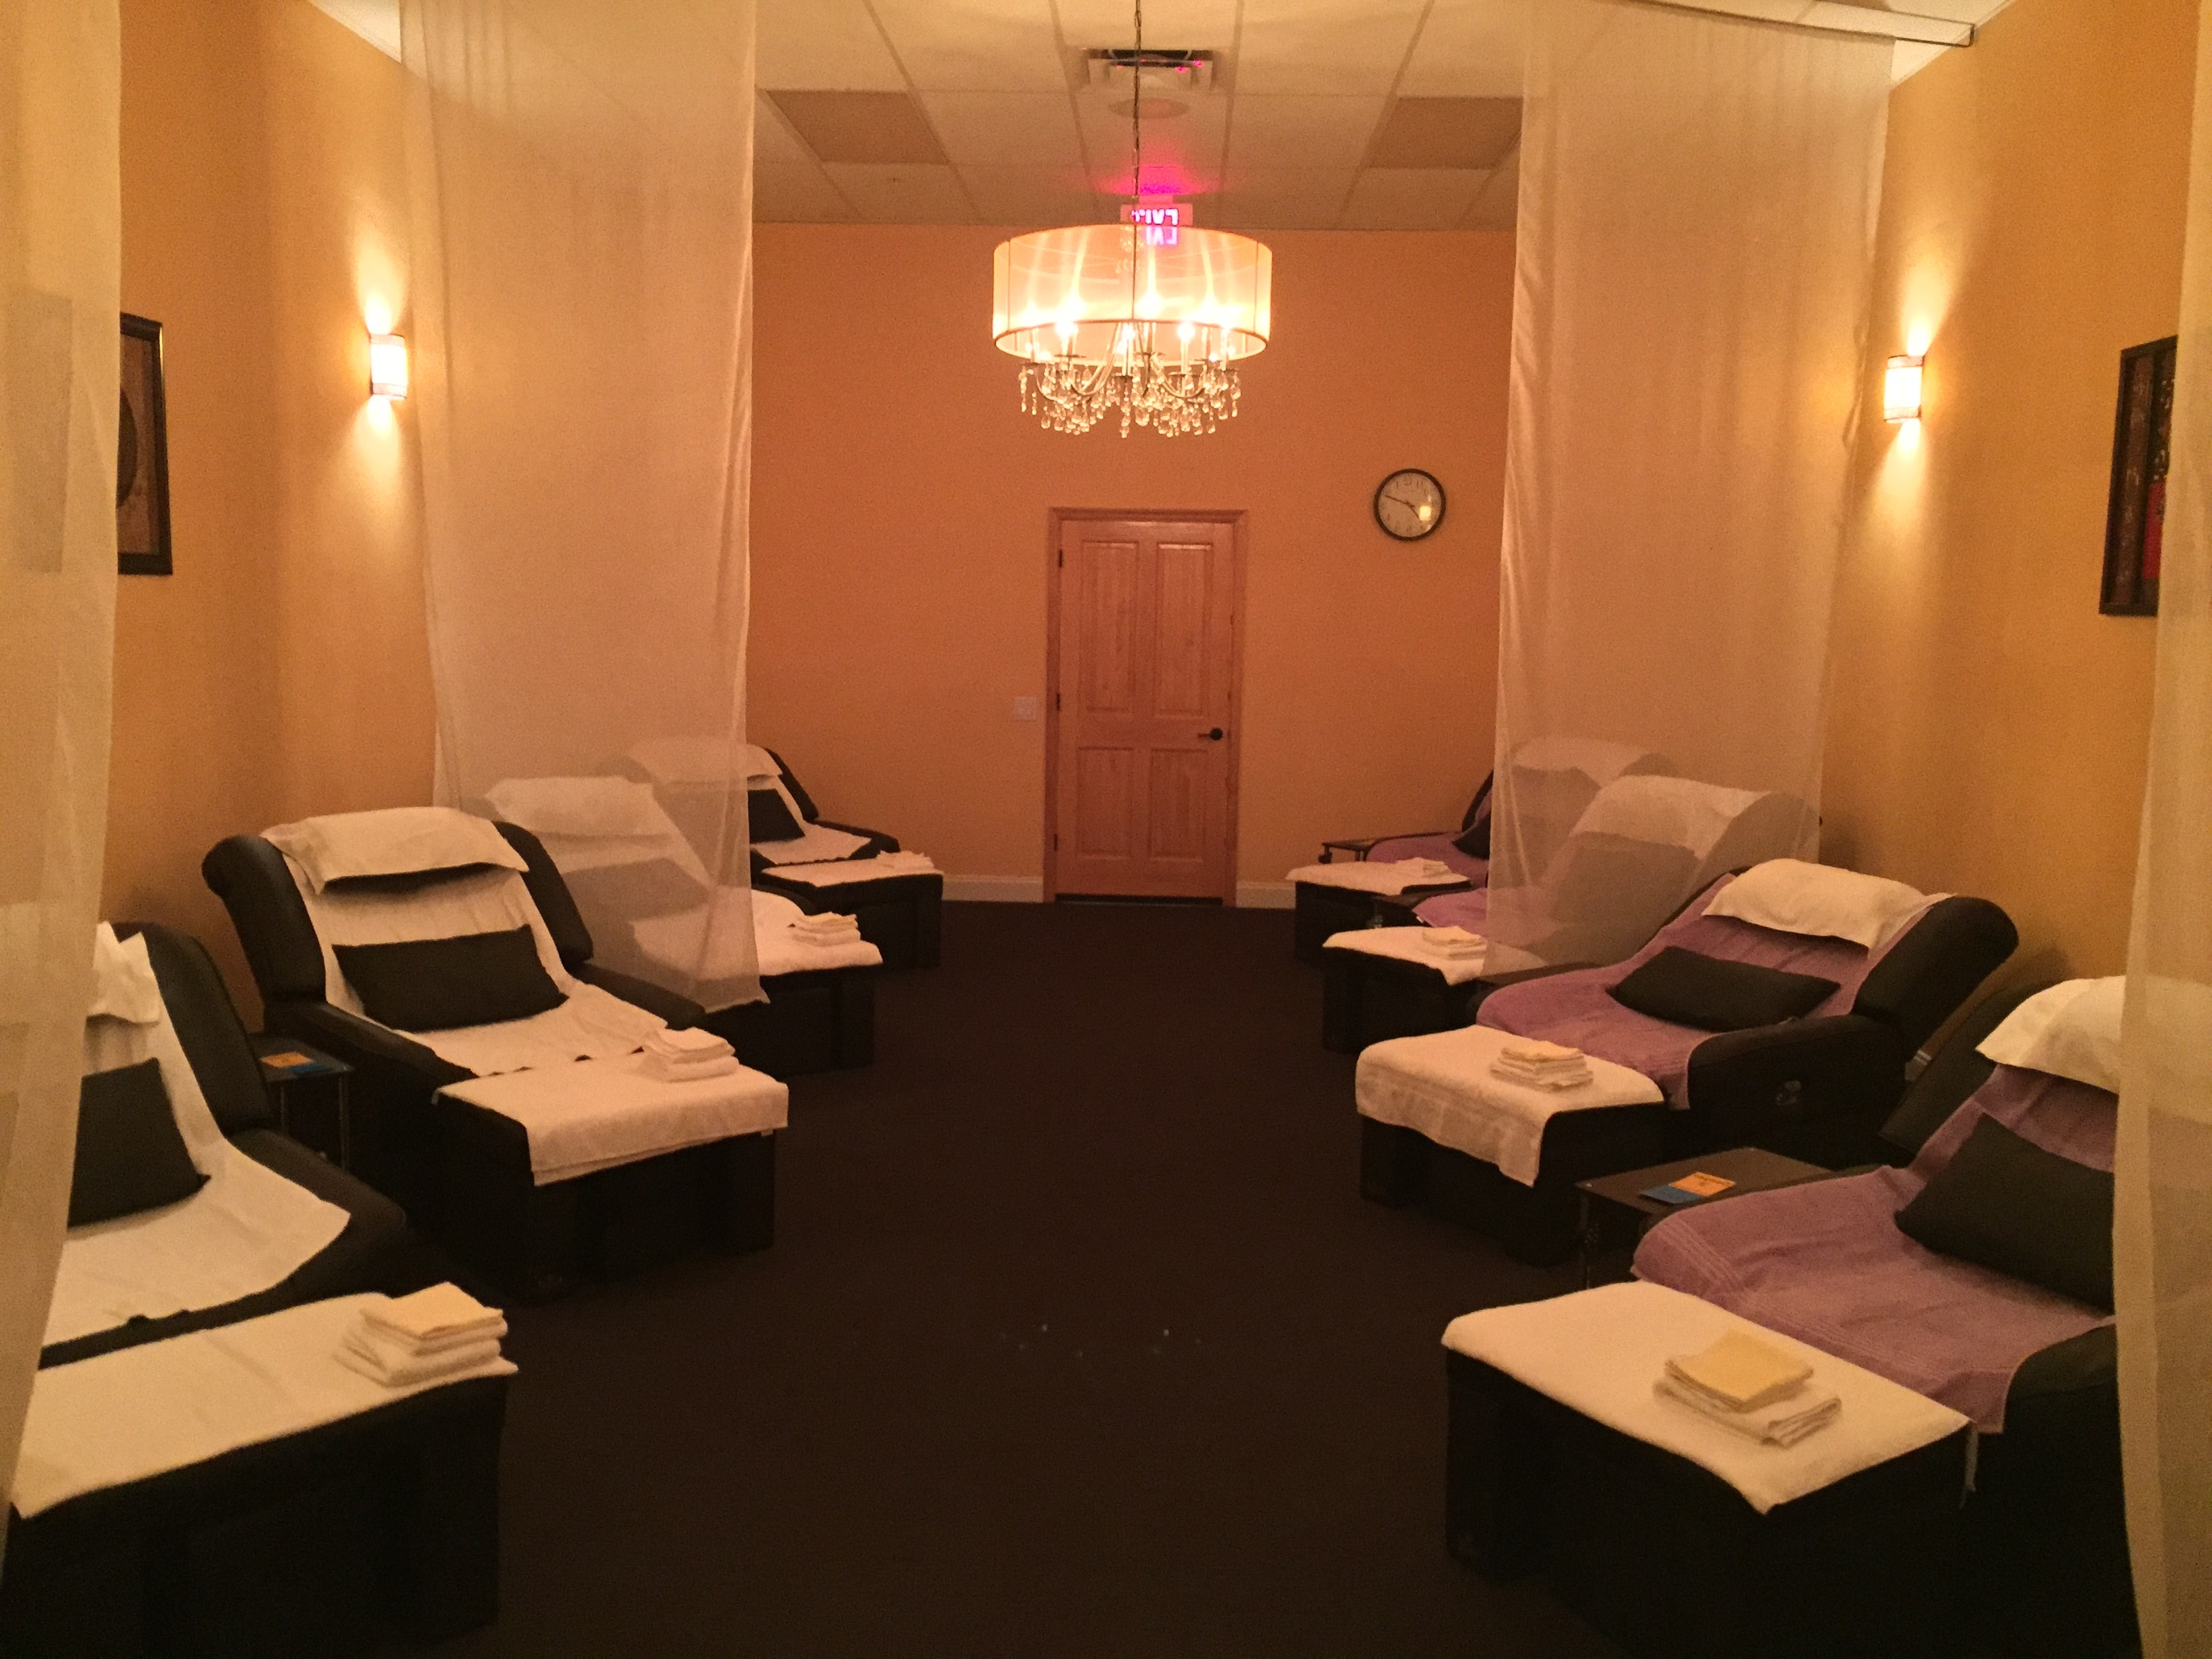 Foot Massage Spa And Acupressure Body Massage (View 8 of 15)